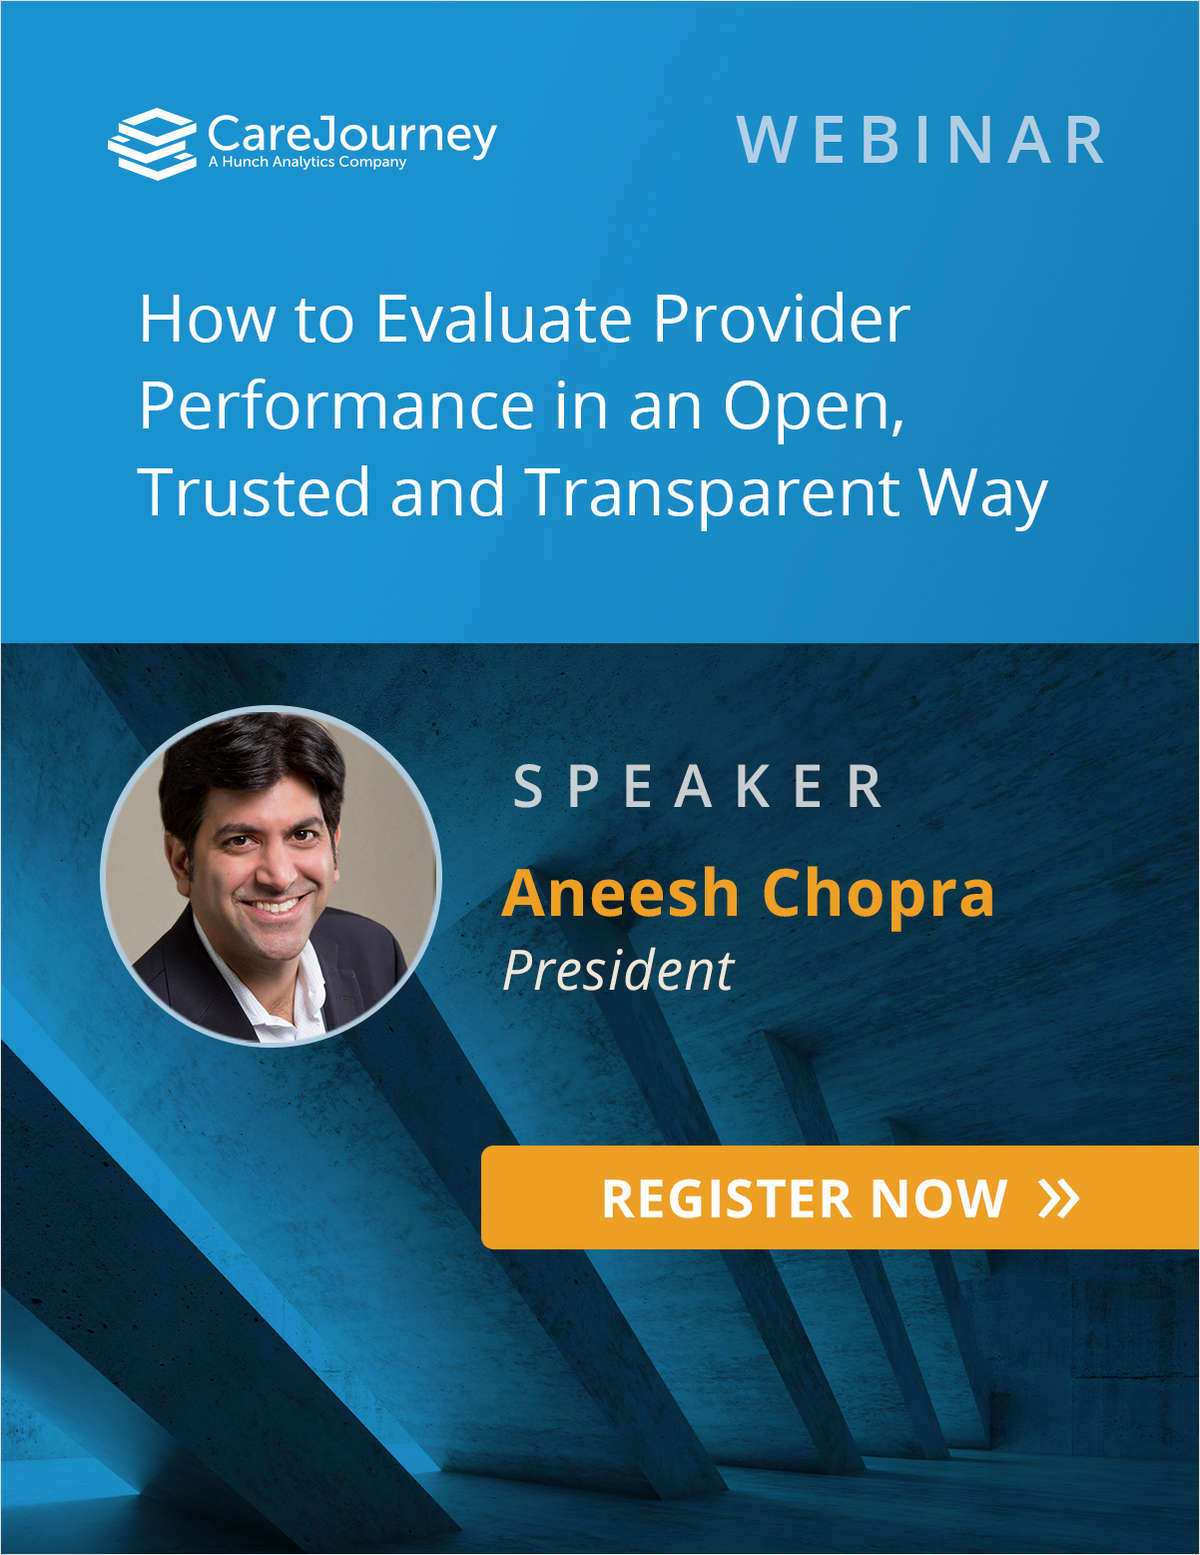 How to Evaluate Provider Performance in An Open, Trusted, and Transparent Way